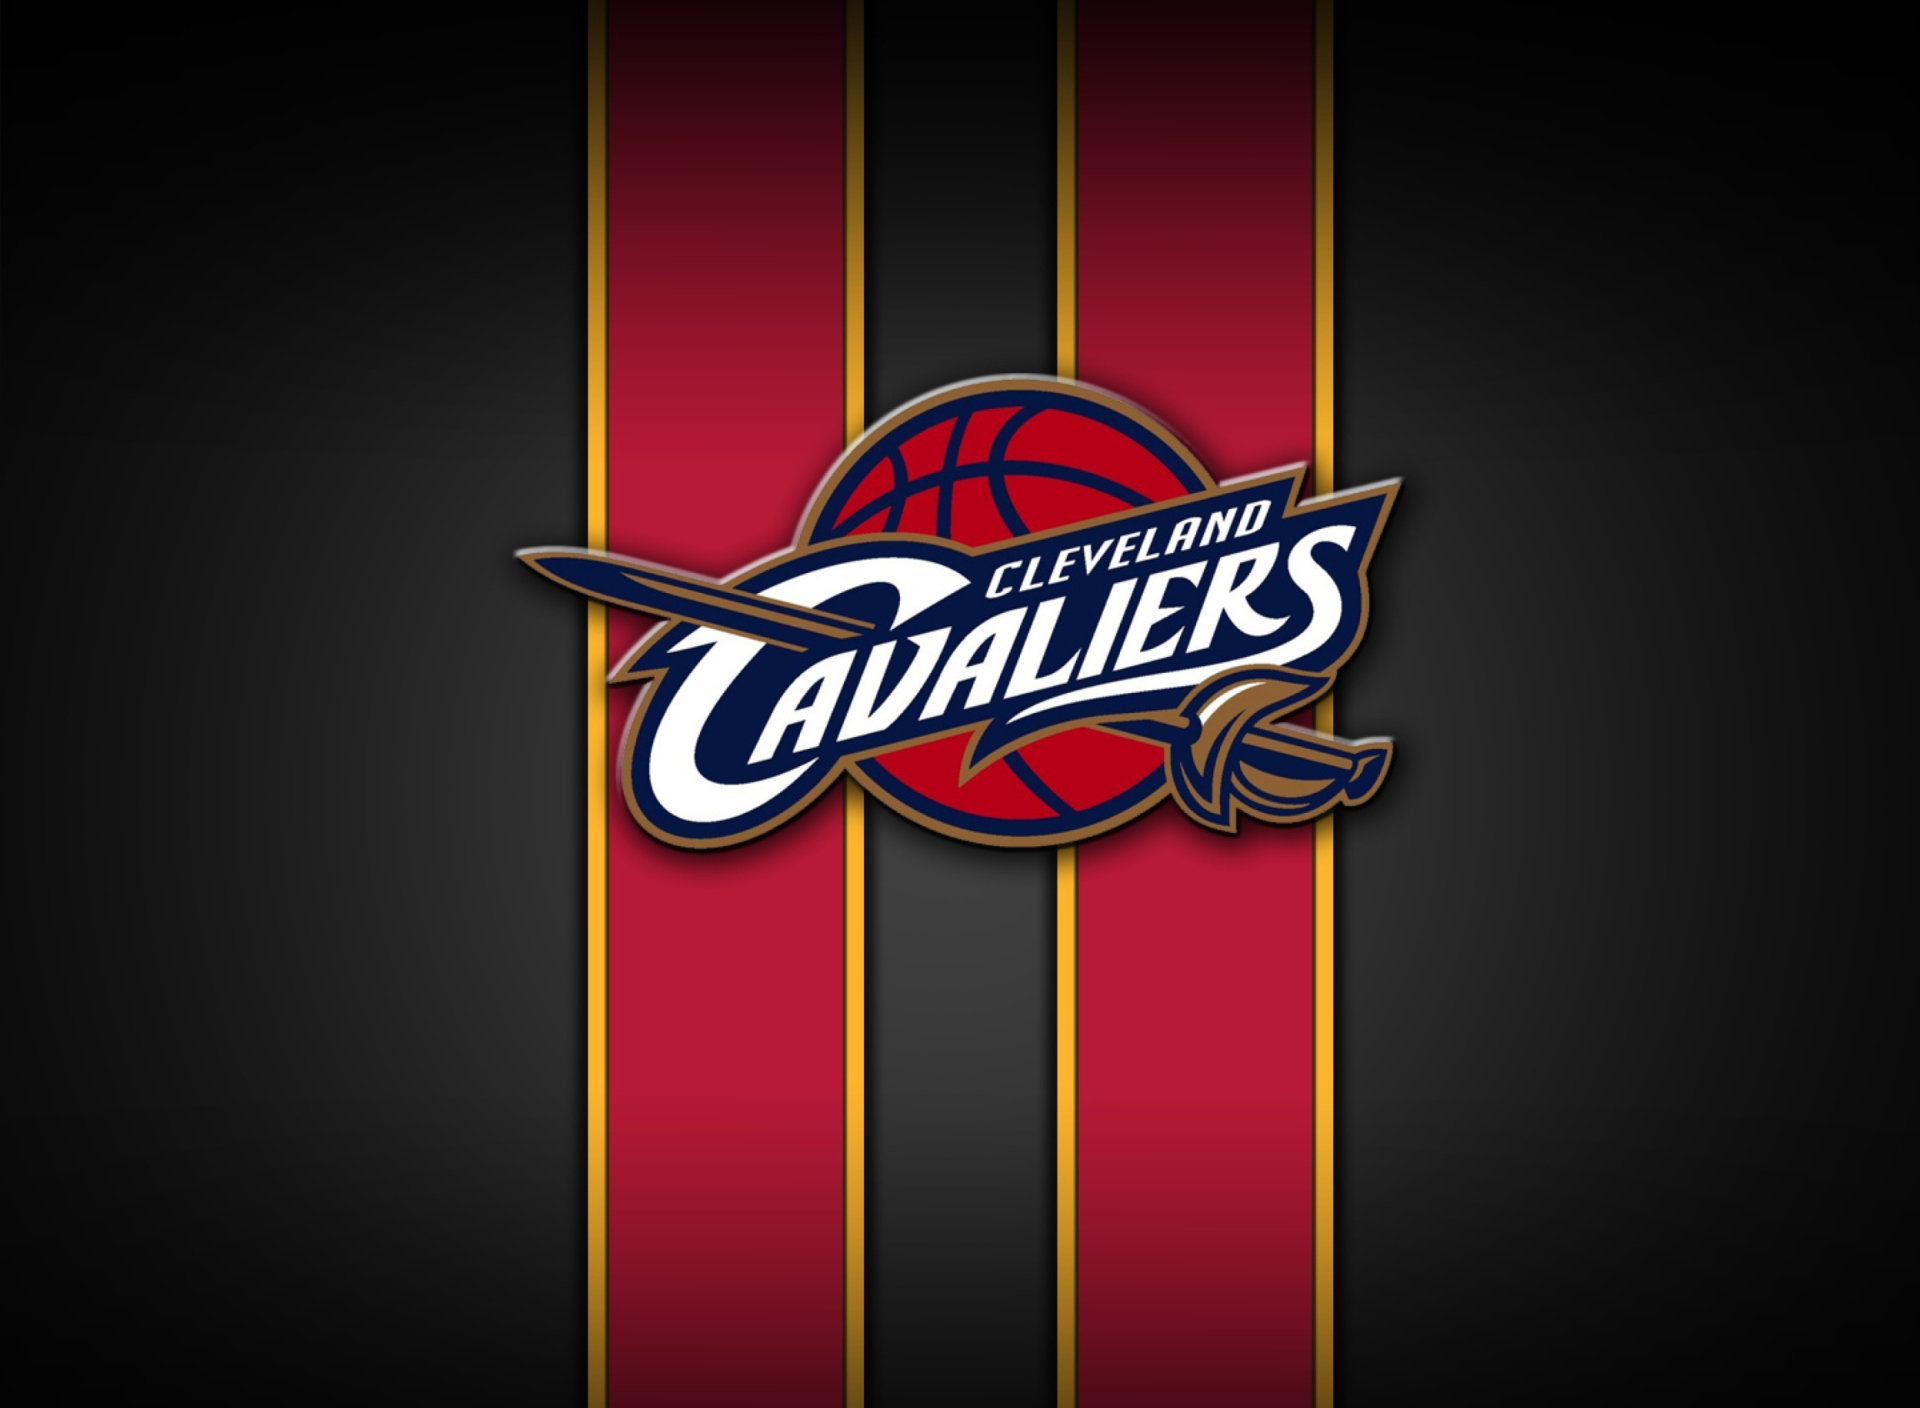 Cleveland Cavaliers Logo Wallpapers Free Download | HD Wallpapers ...